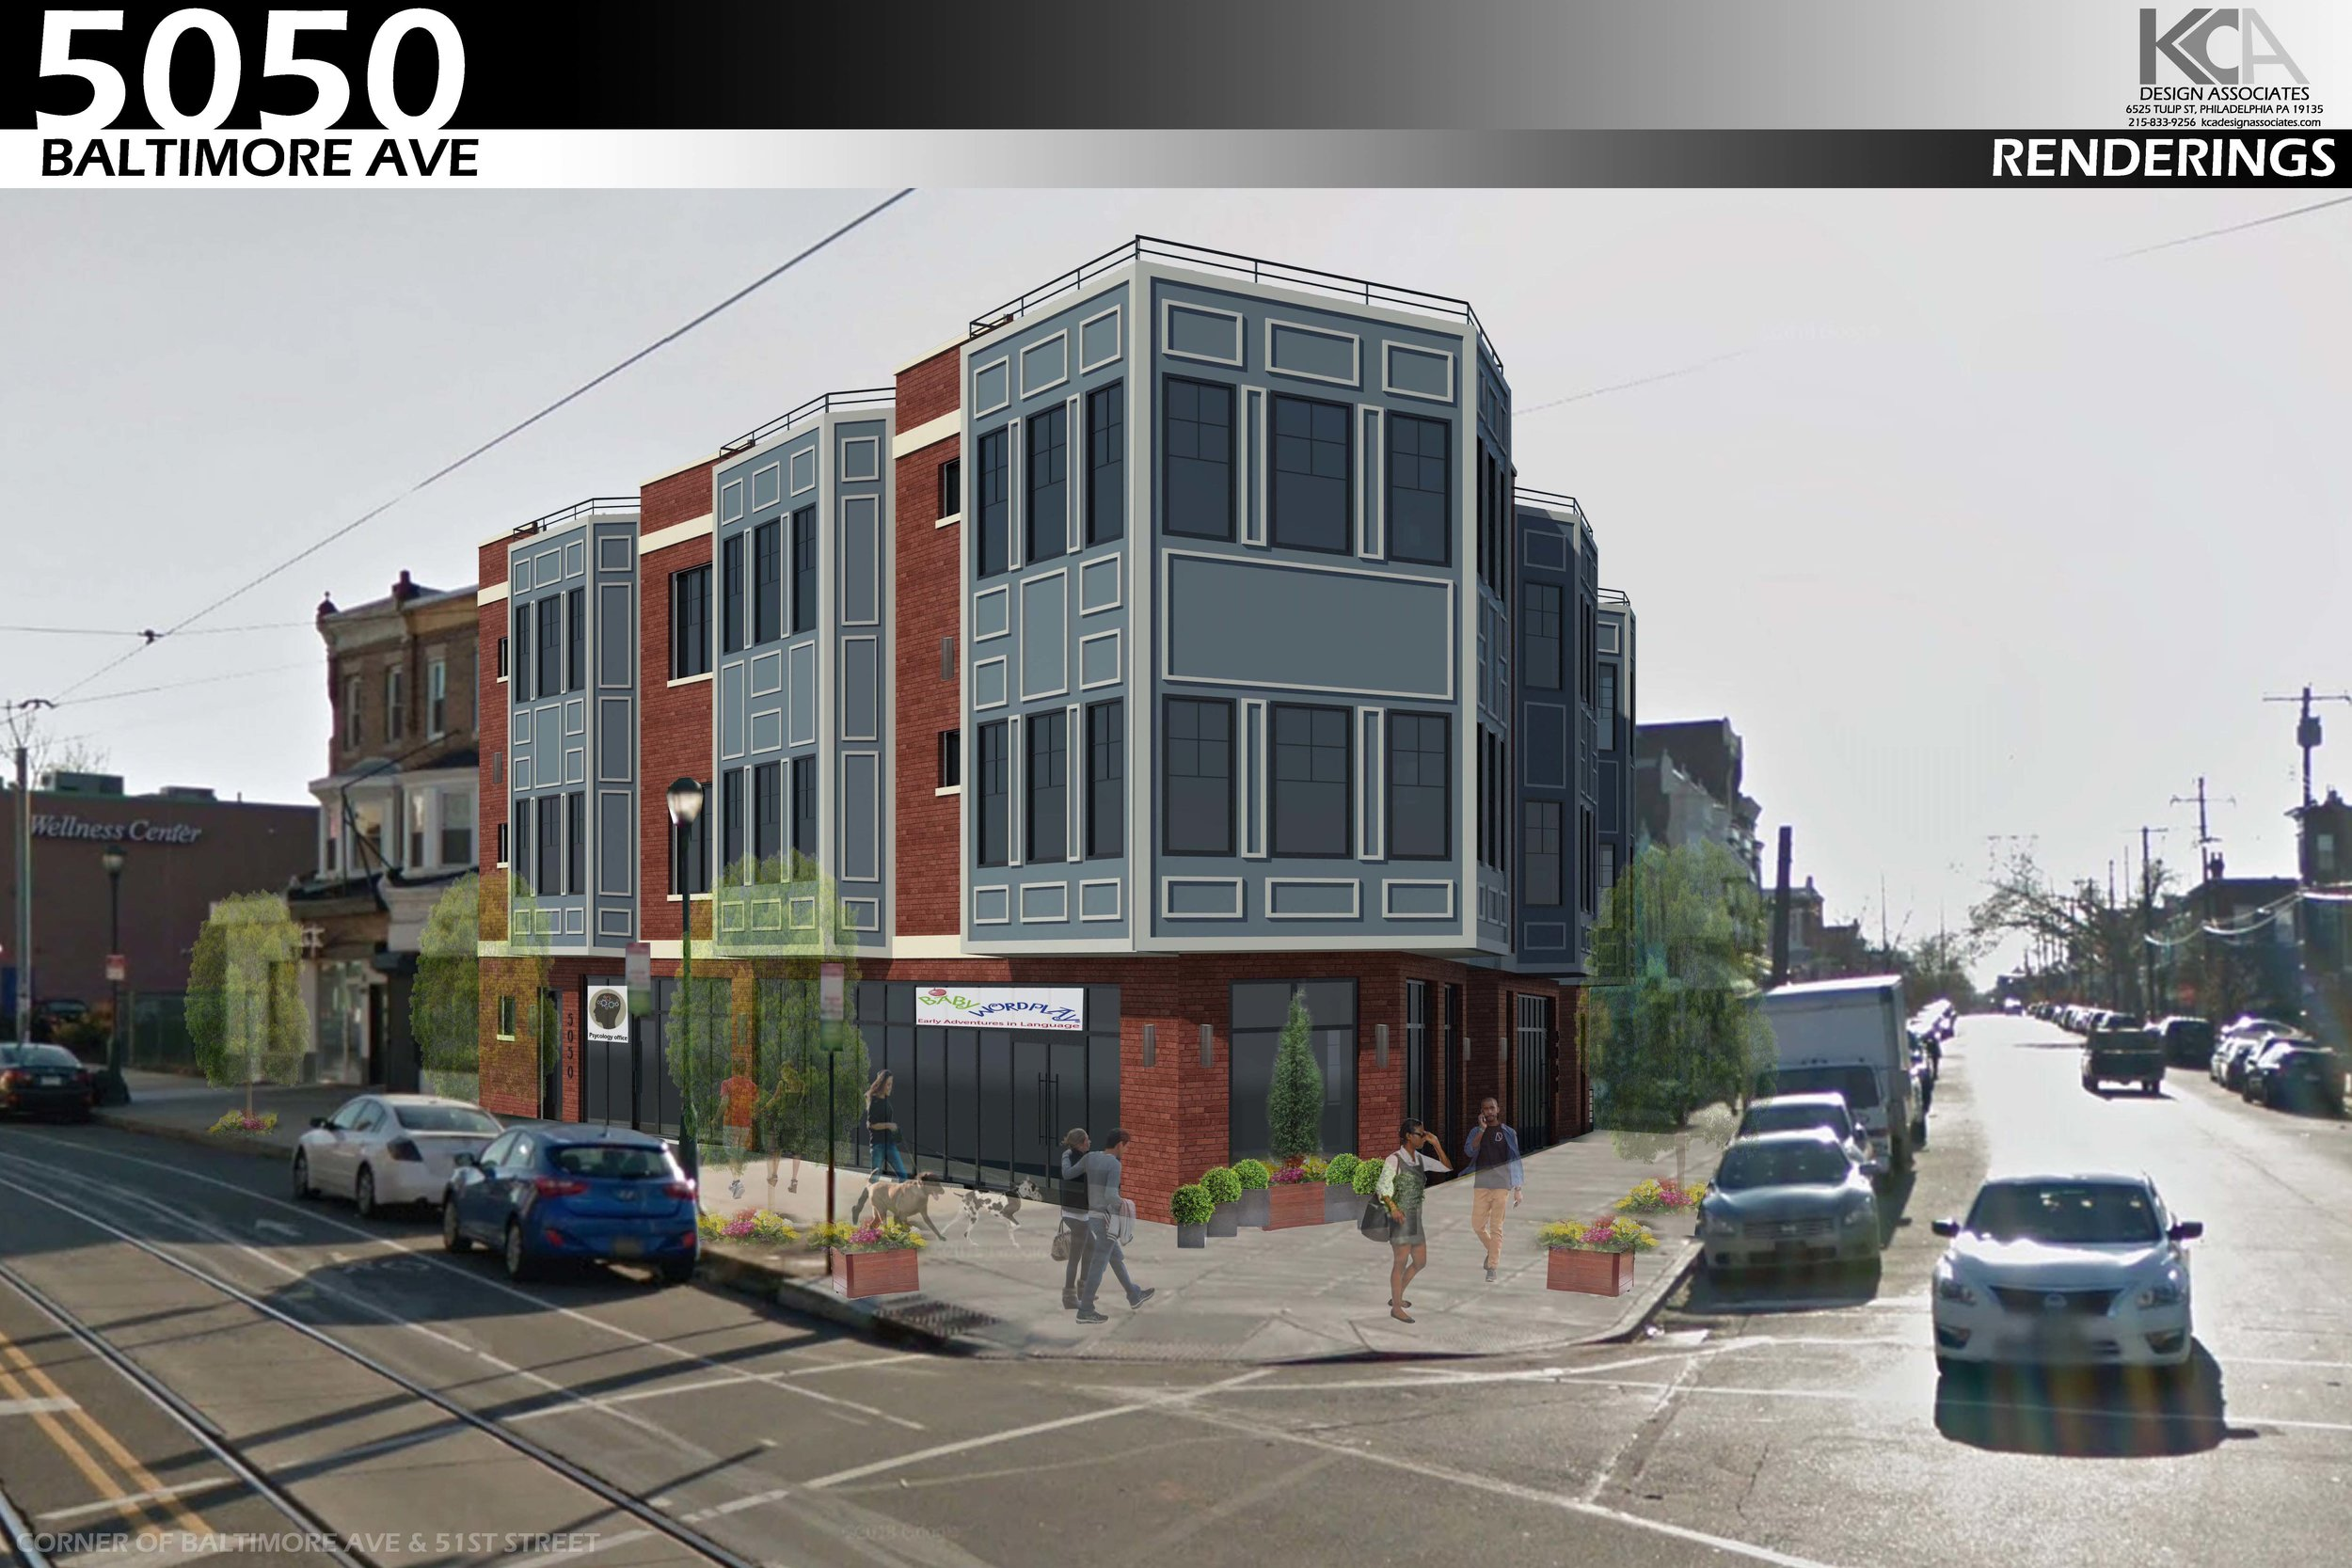 5050 Baltimore Avenue - Final 3D Rendering.jpg